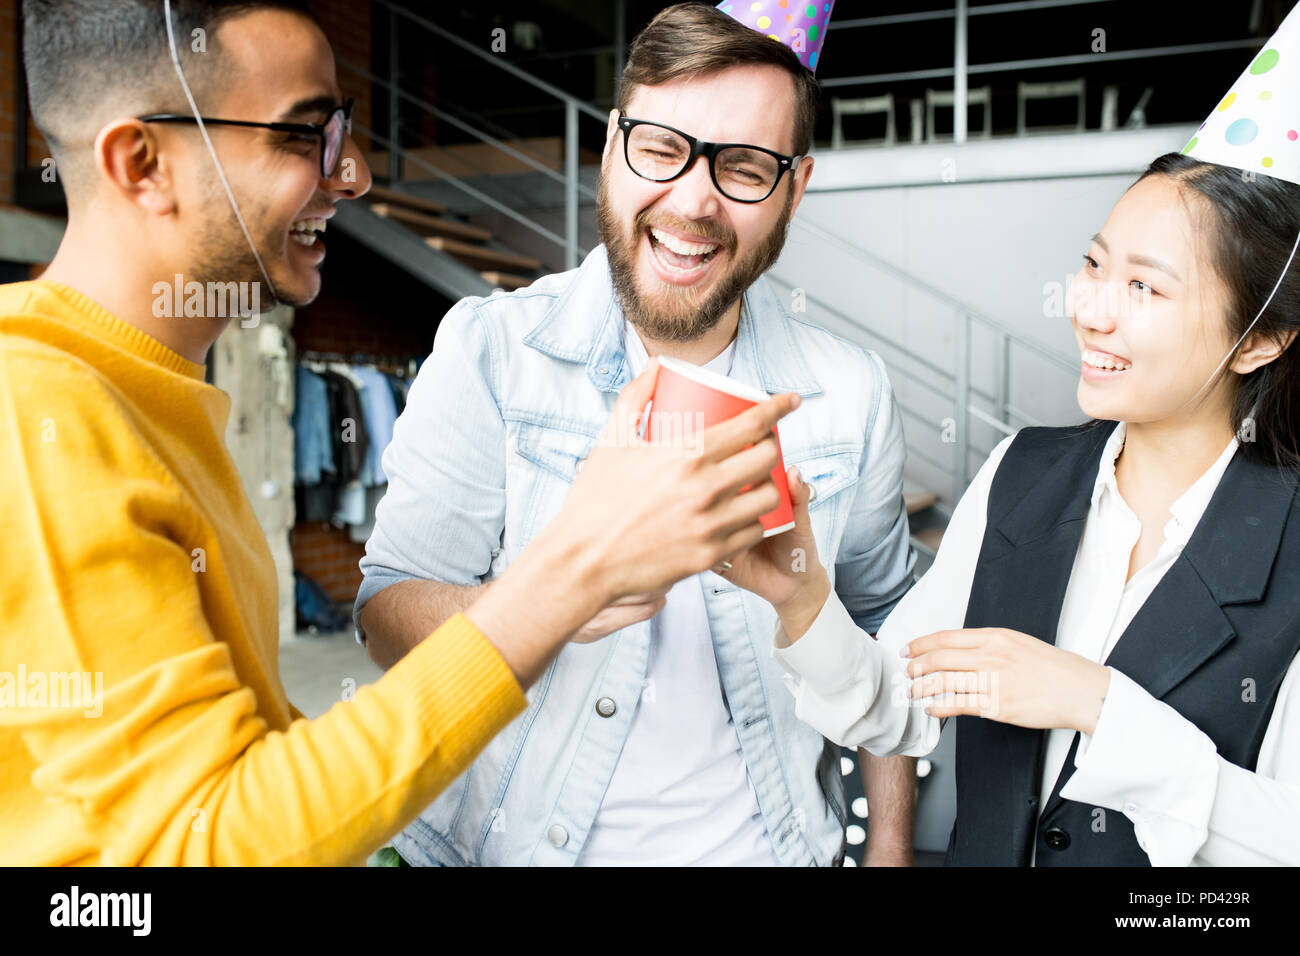 Celebrating Birthday in Office - Stock Image